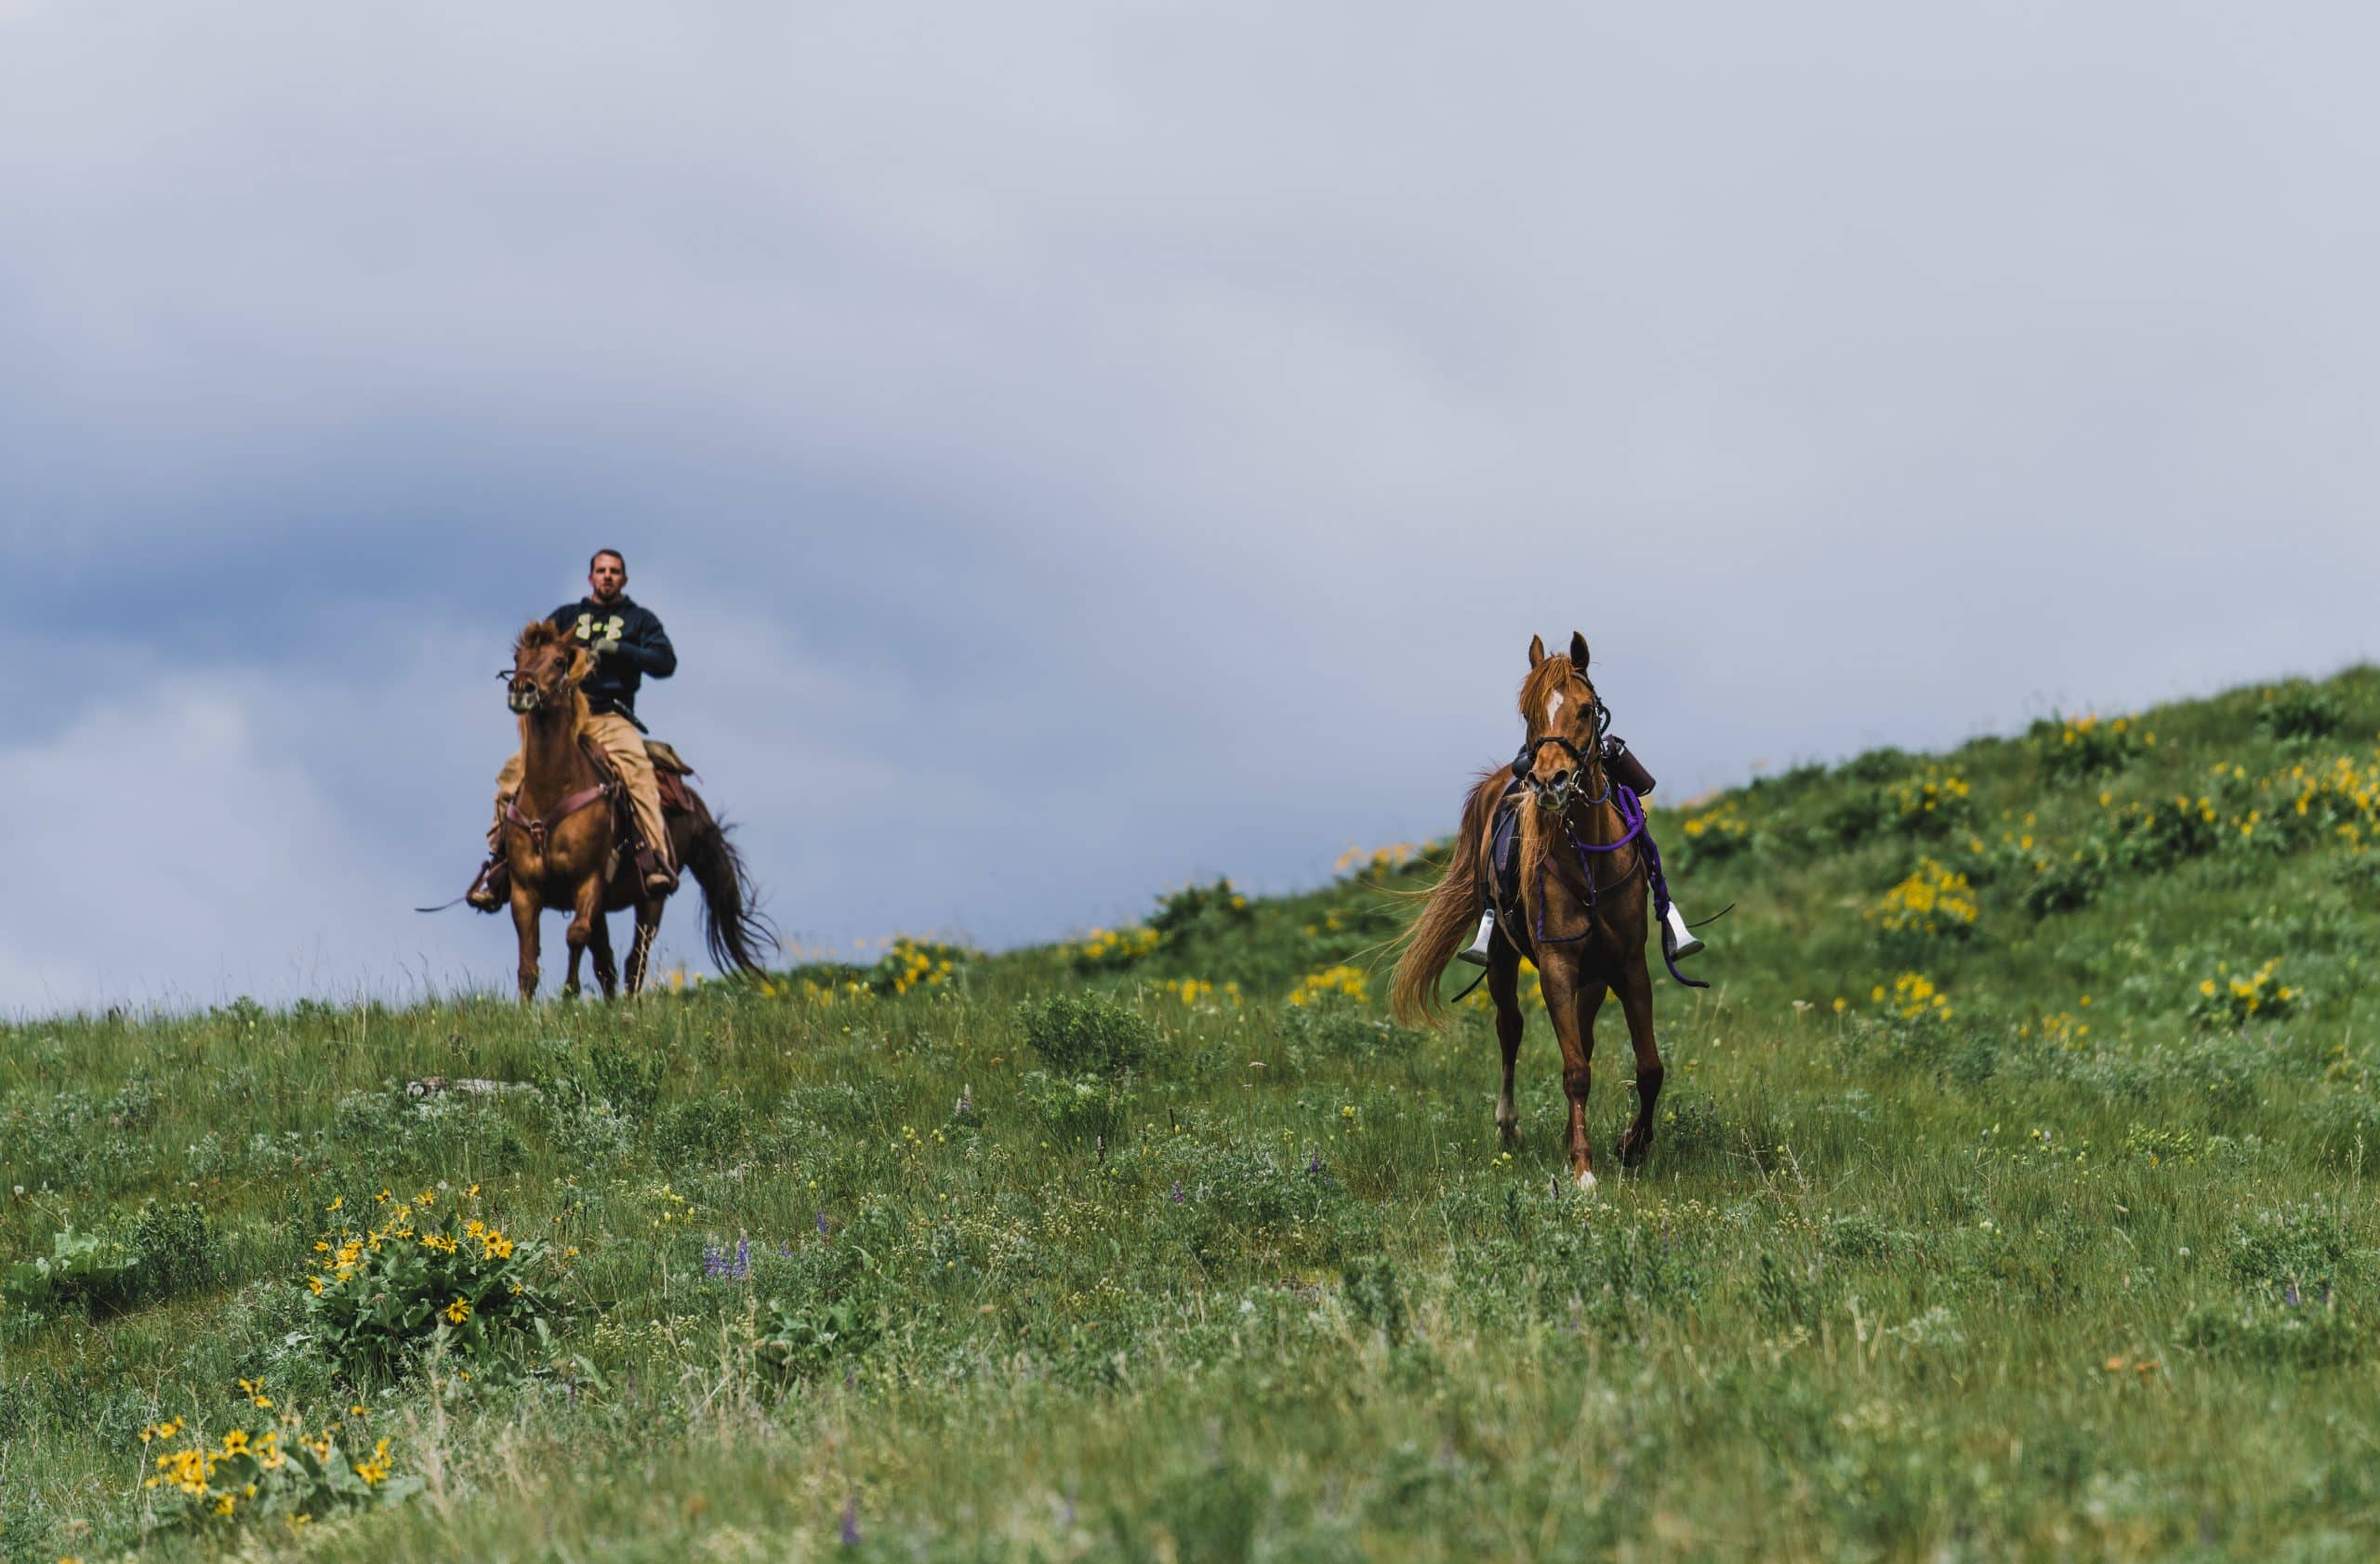 A rider chases after a loose horse on opening day of shed season on the Clearwater WMA